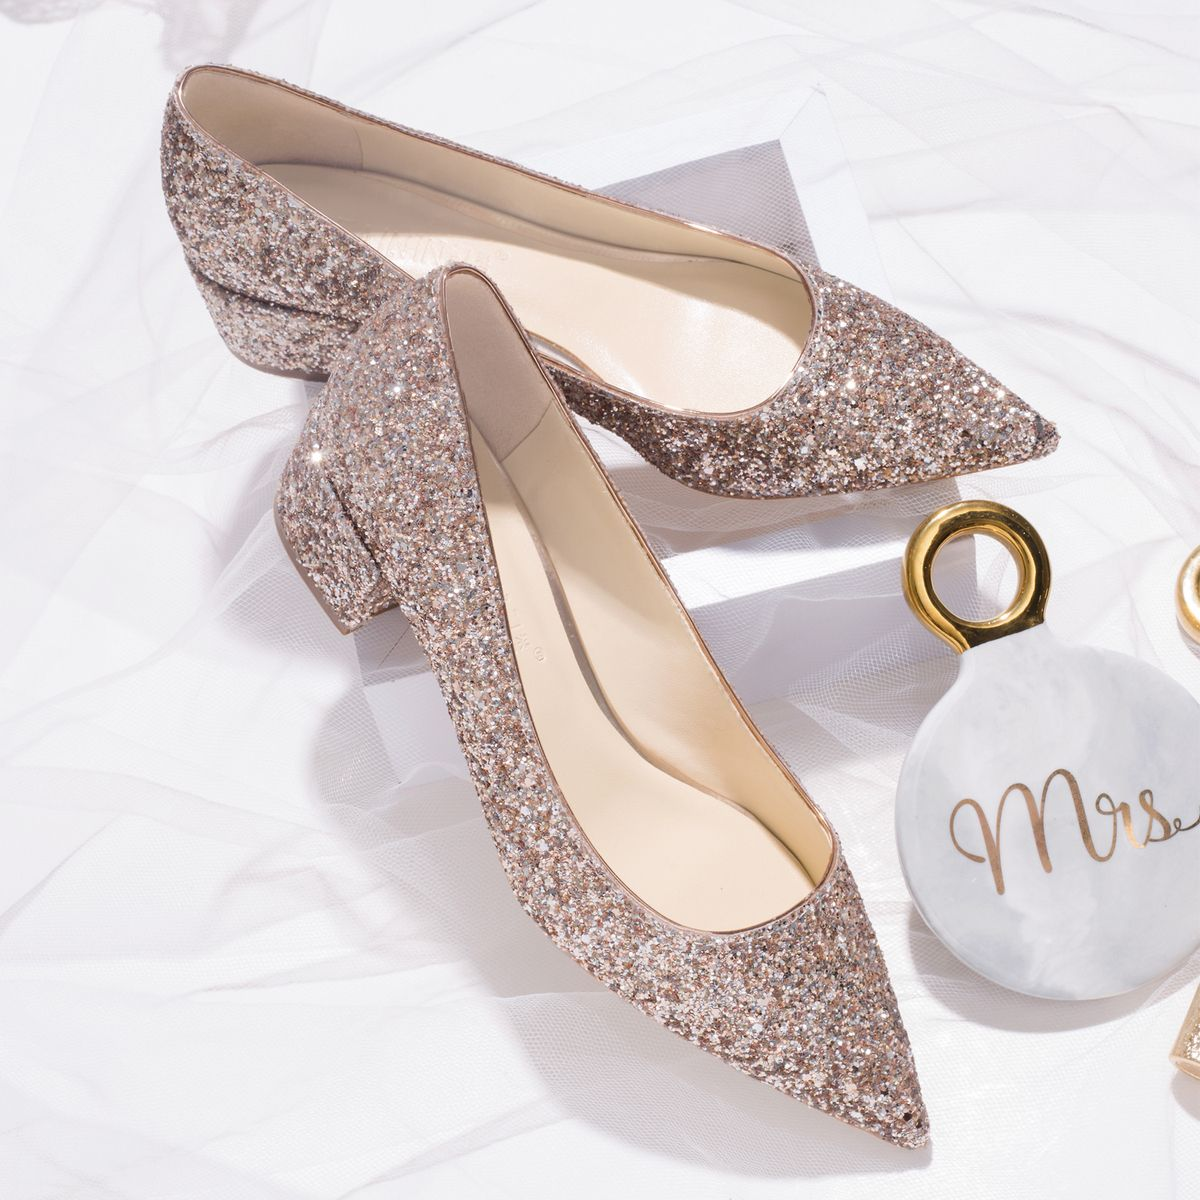 Sparkly Gold Wedding Shoes 2019 Leather Sequins 6 cm Stiletto Heels Pointed Toe Wedding Pumps